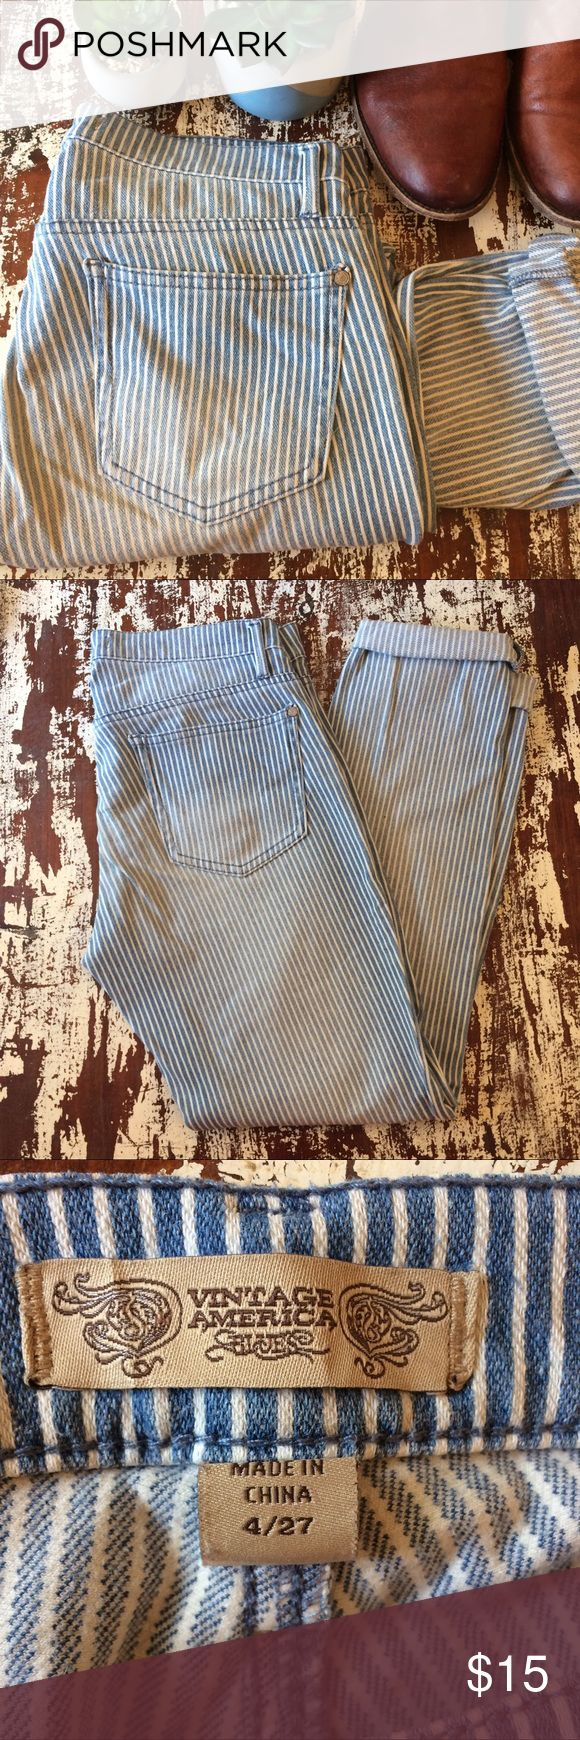 "Vintage America Engineer stripe pants Denim and white striped pants. Faded vintage look.  Material: 95% Cotton, 5% Spandex Measure: Inseam 27"" cuffed, 8.5"" rise, Top of jeans 30"", Leg opening 10""  Condition: Gently used Vintage America Blues Pants Ankle & Cropped"